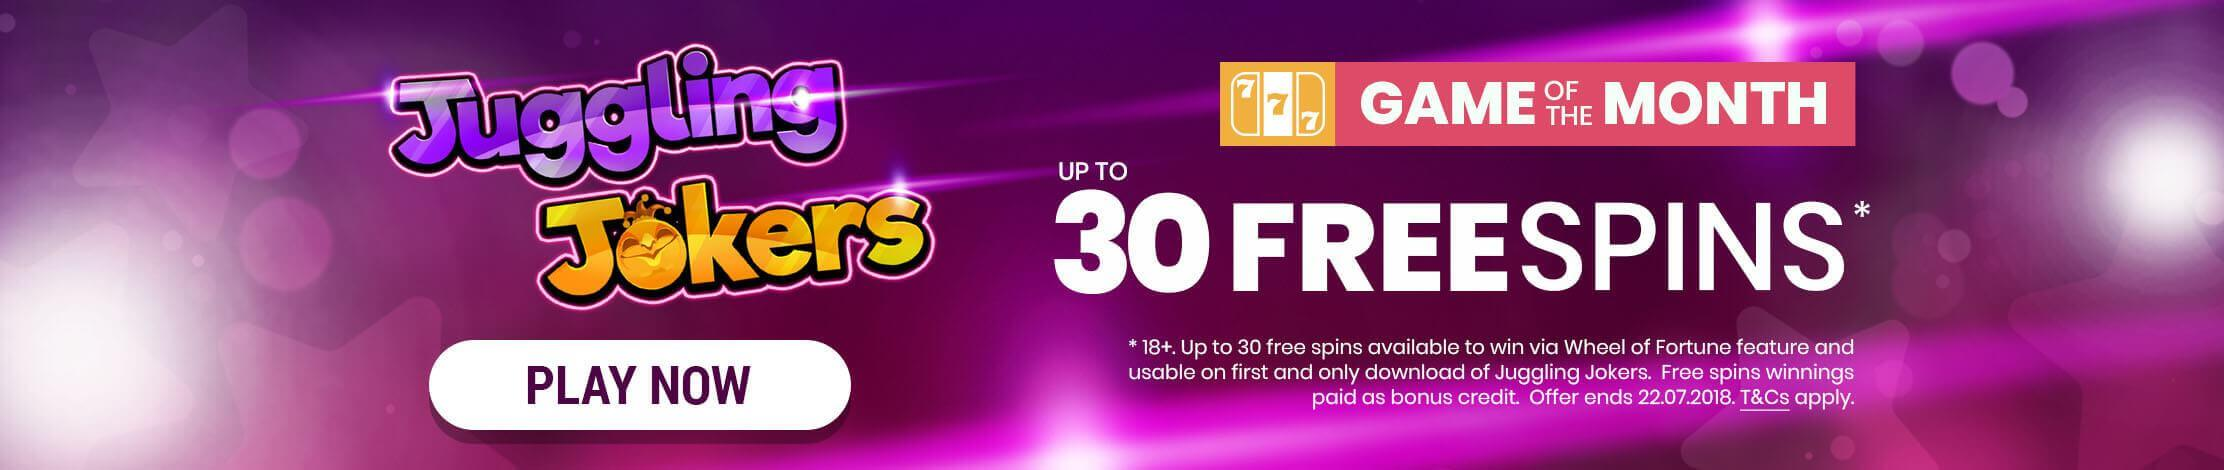 Juggling Jokers. Online slots of the month. Win up to 30 Free Spins